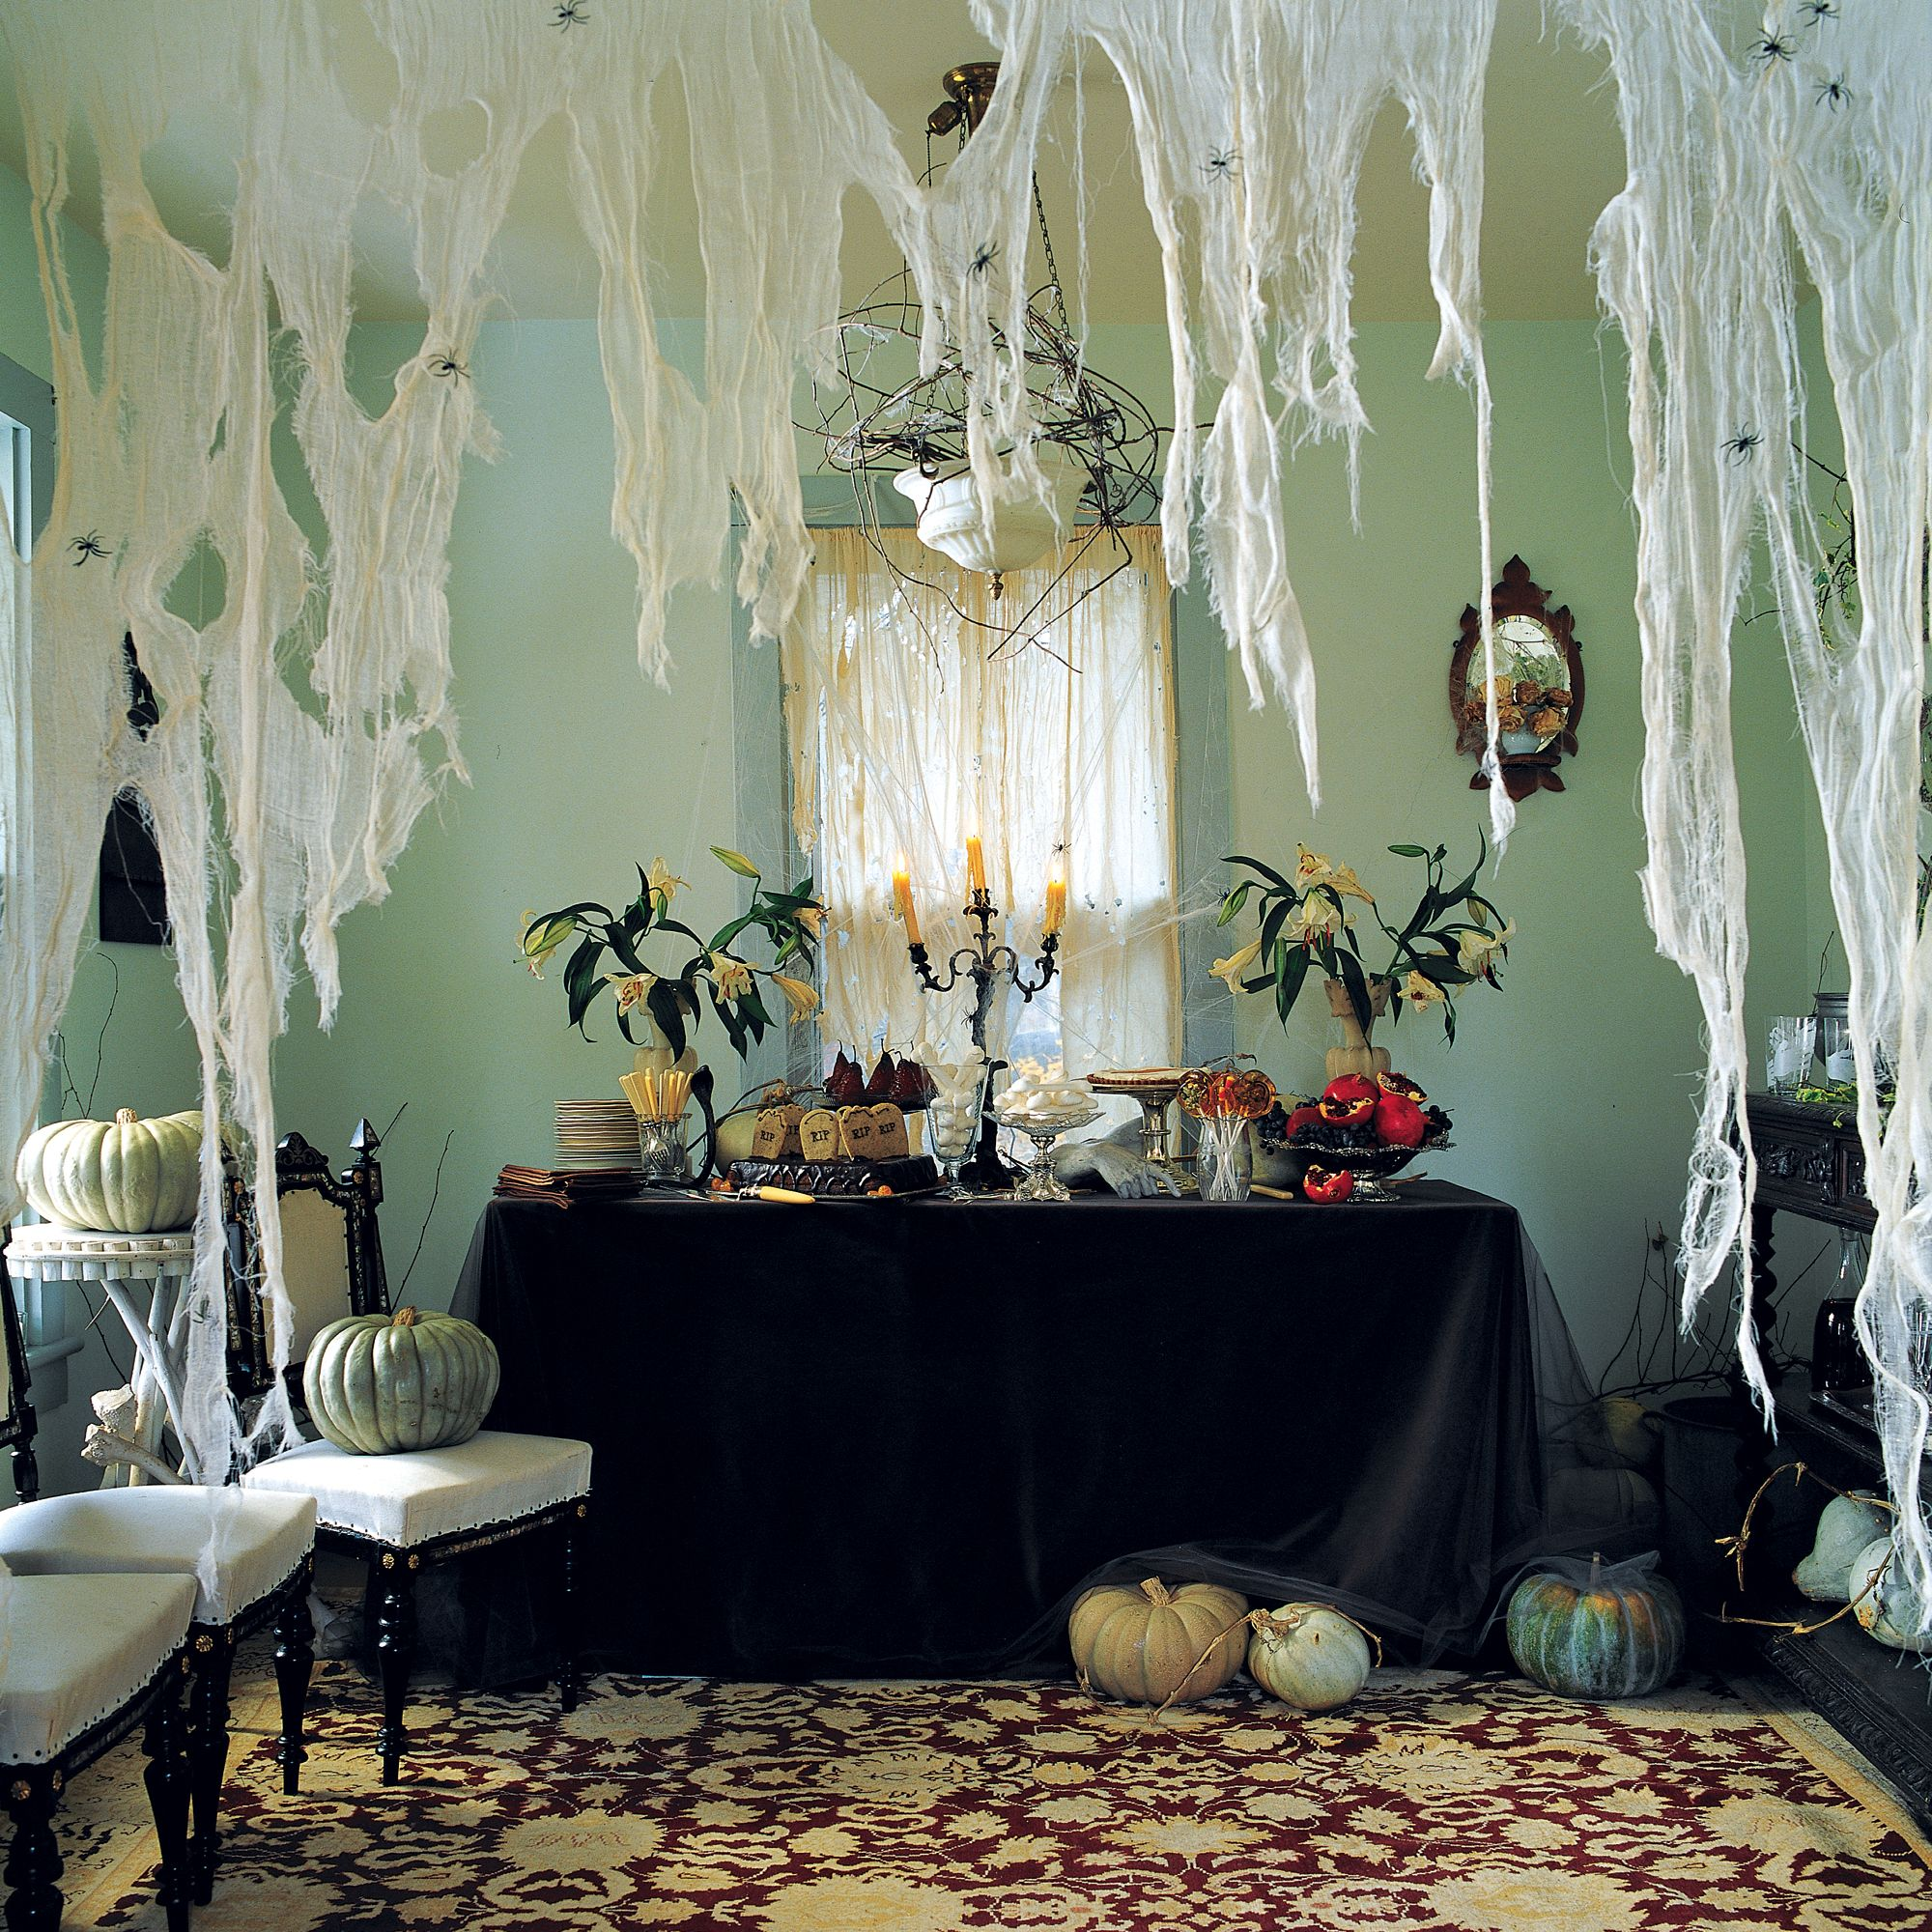 Indoor Halloween Decorations Diy halloween party decorations, Fun - Diy Indoor Halloween Decorations